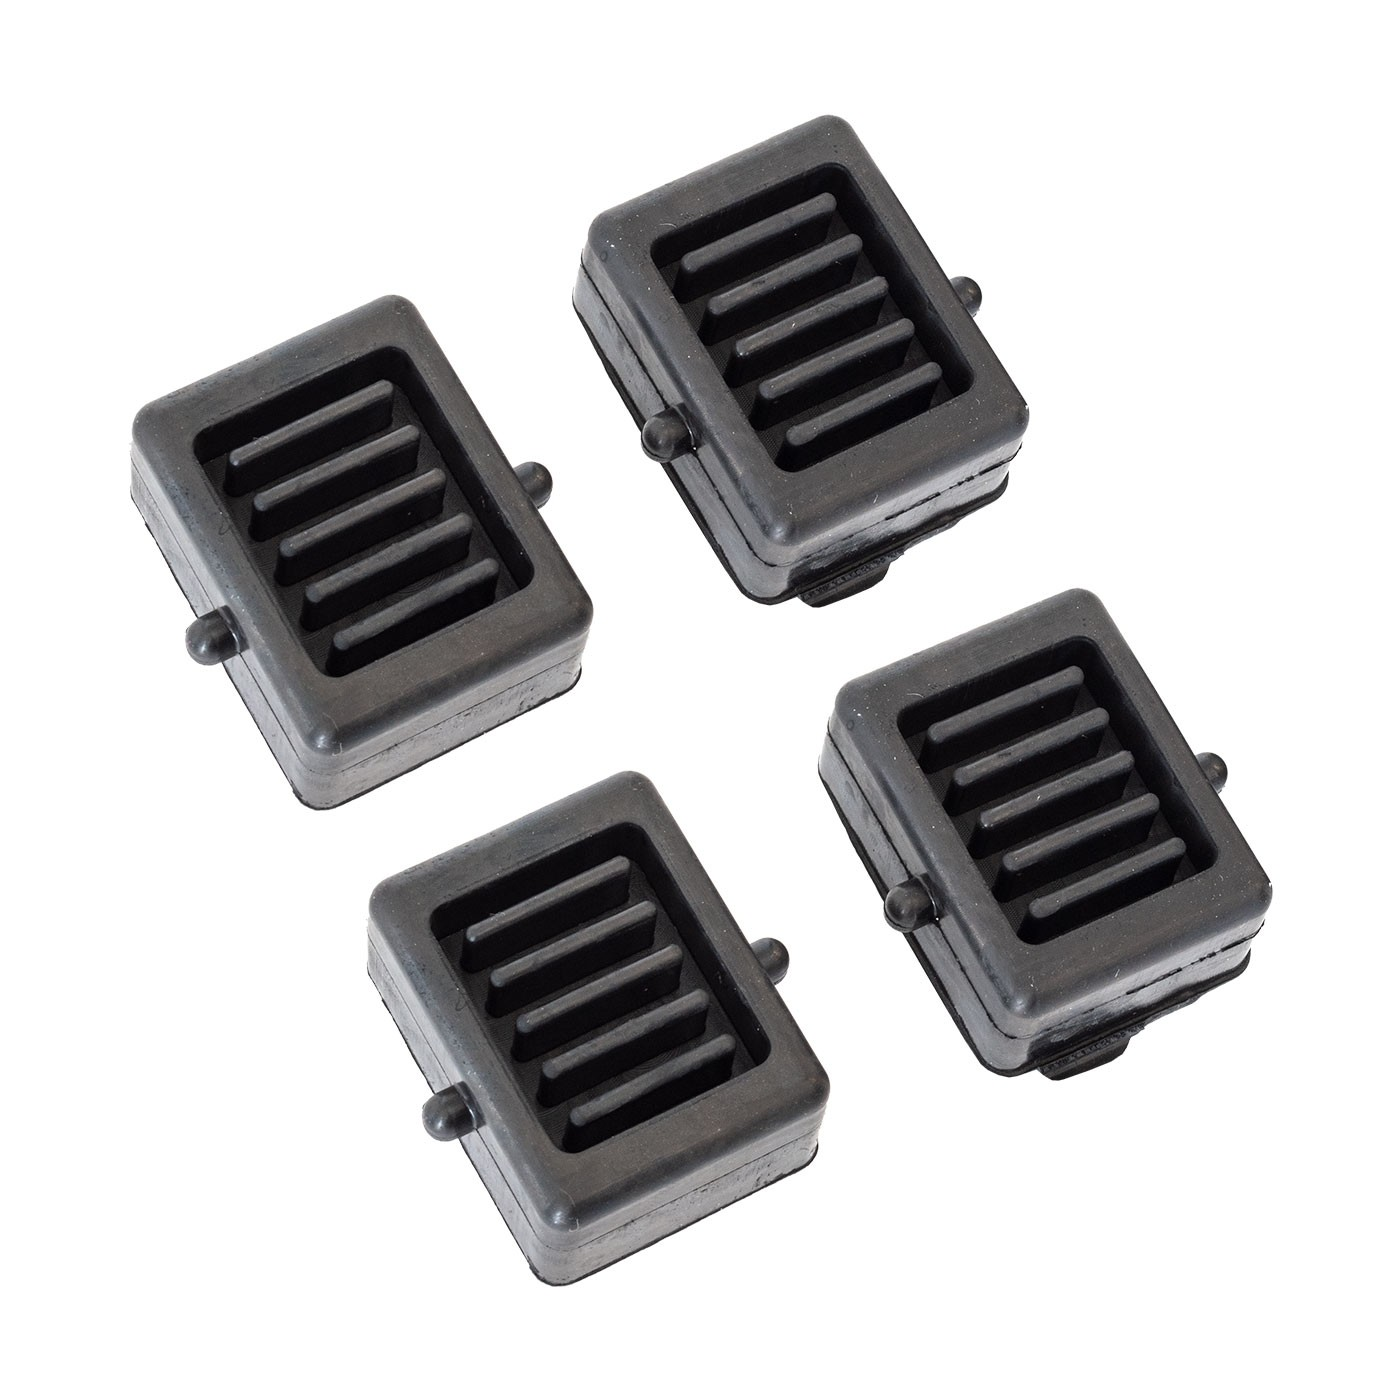 1994-2004 Ford Mustang or Cobra A/C Condenser Rubber Insulators Set of 4